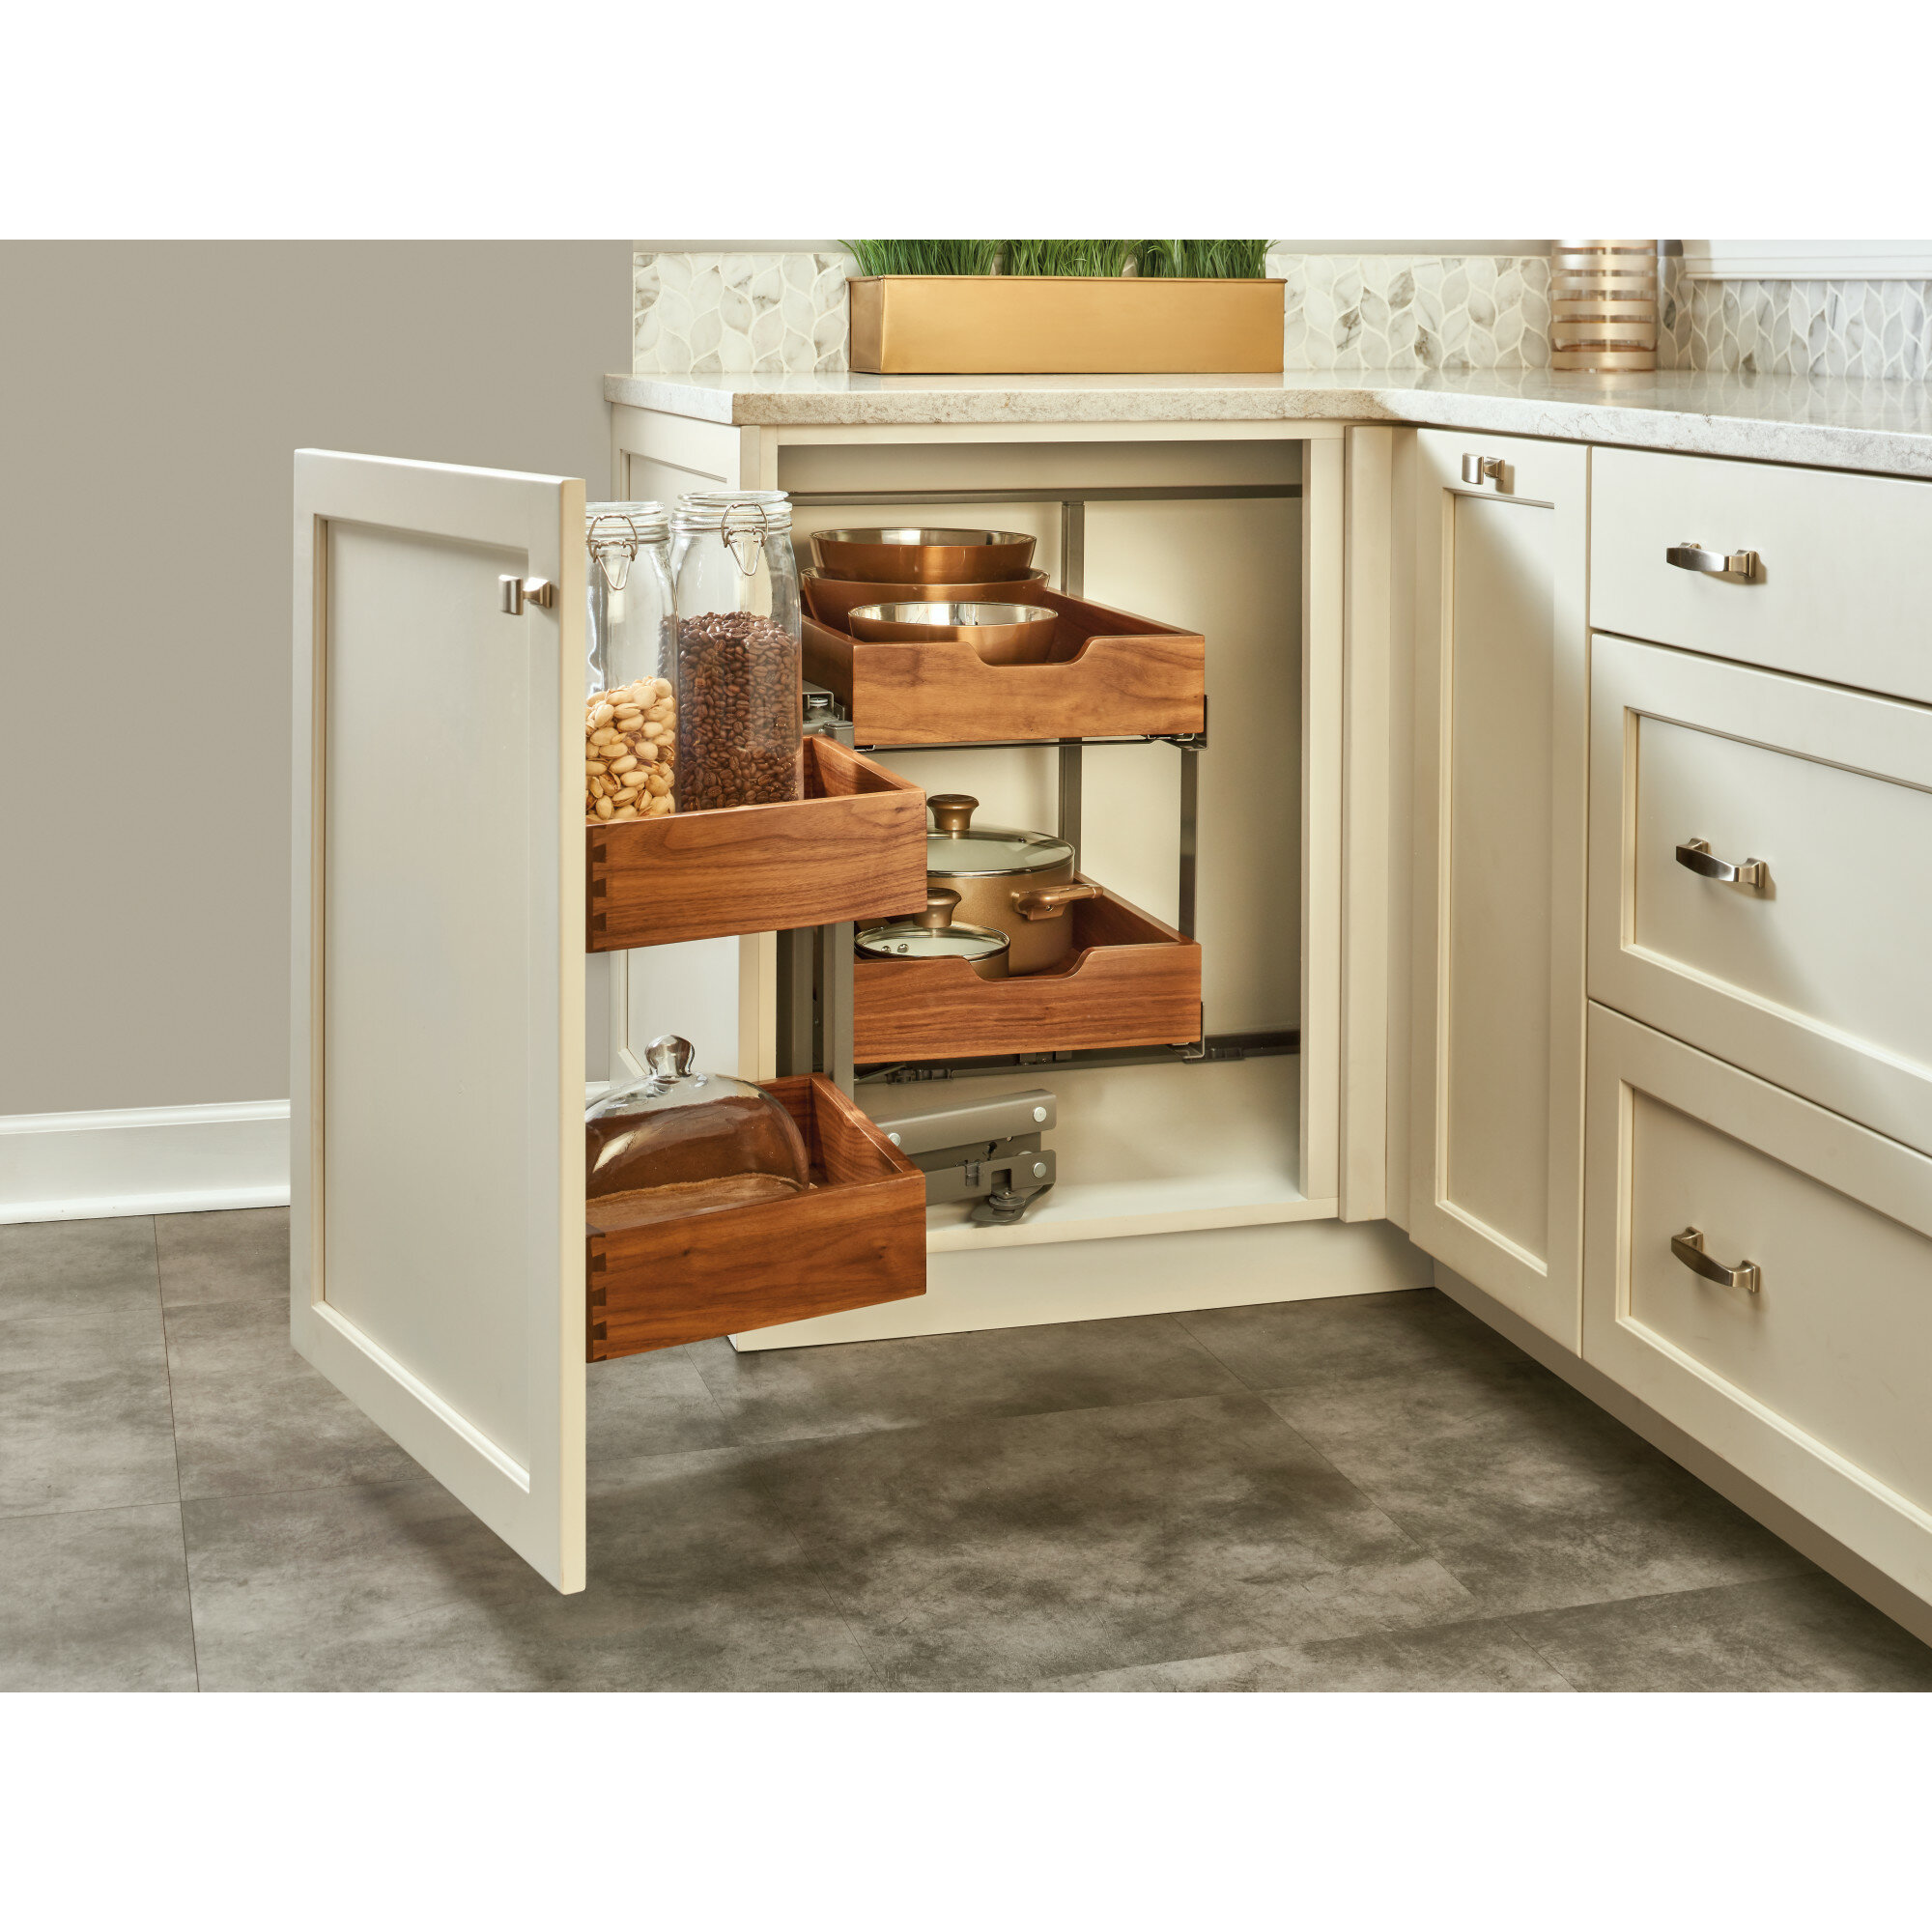 Rev A Shelf Blind Corner Cabinet Organizer Pull Out Pantry Wayfair